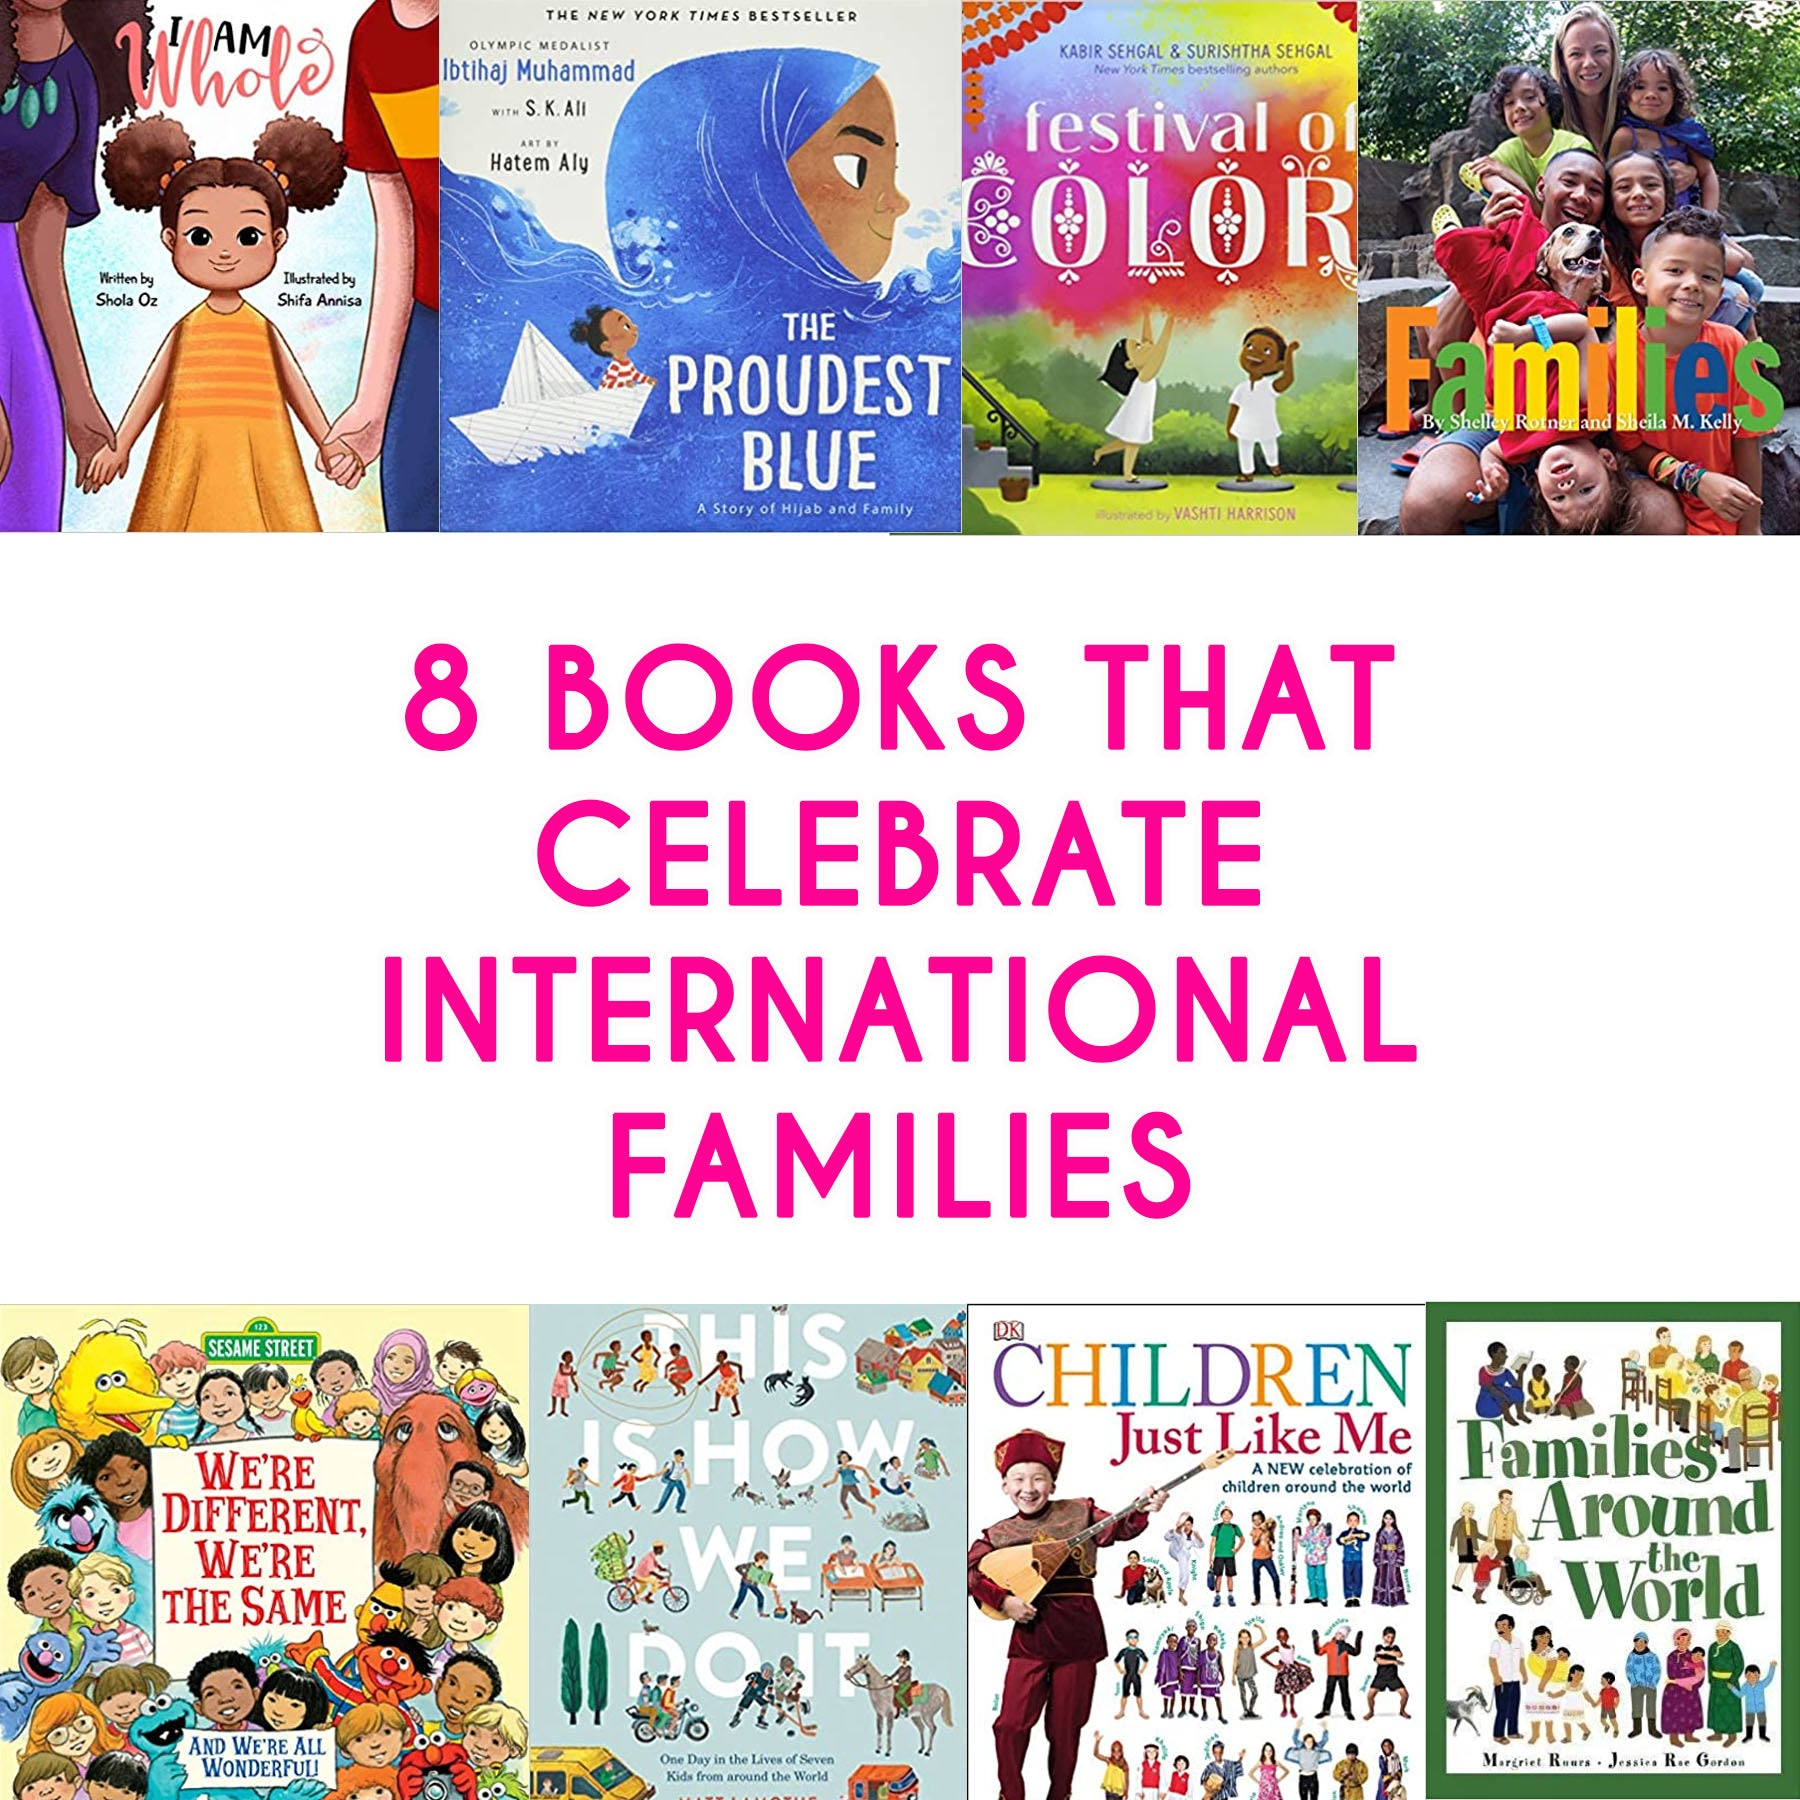 Children's Books About Diverse Families You Need in Your Home Library